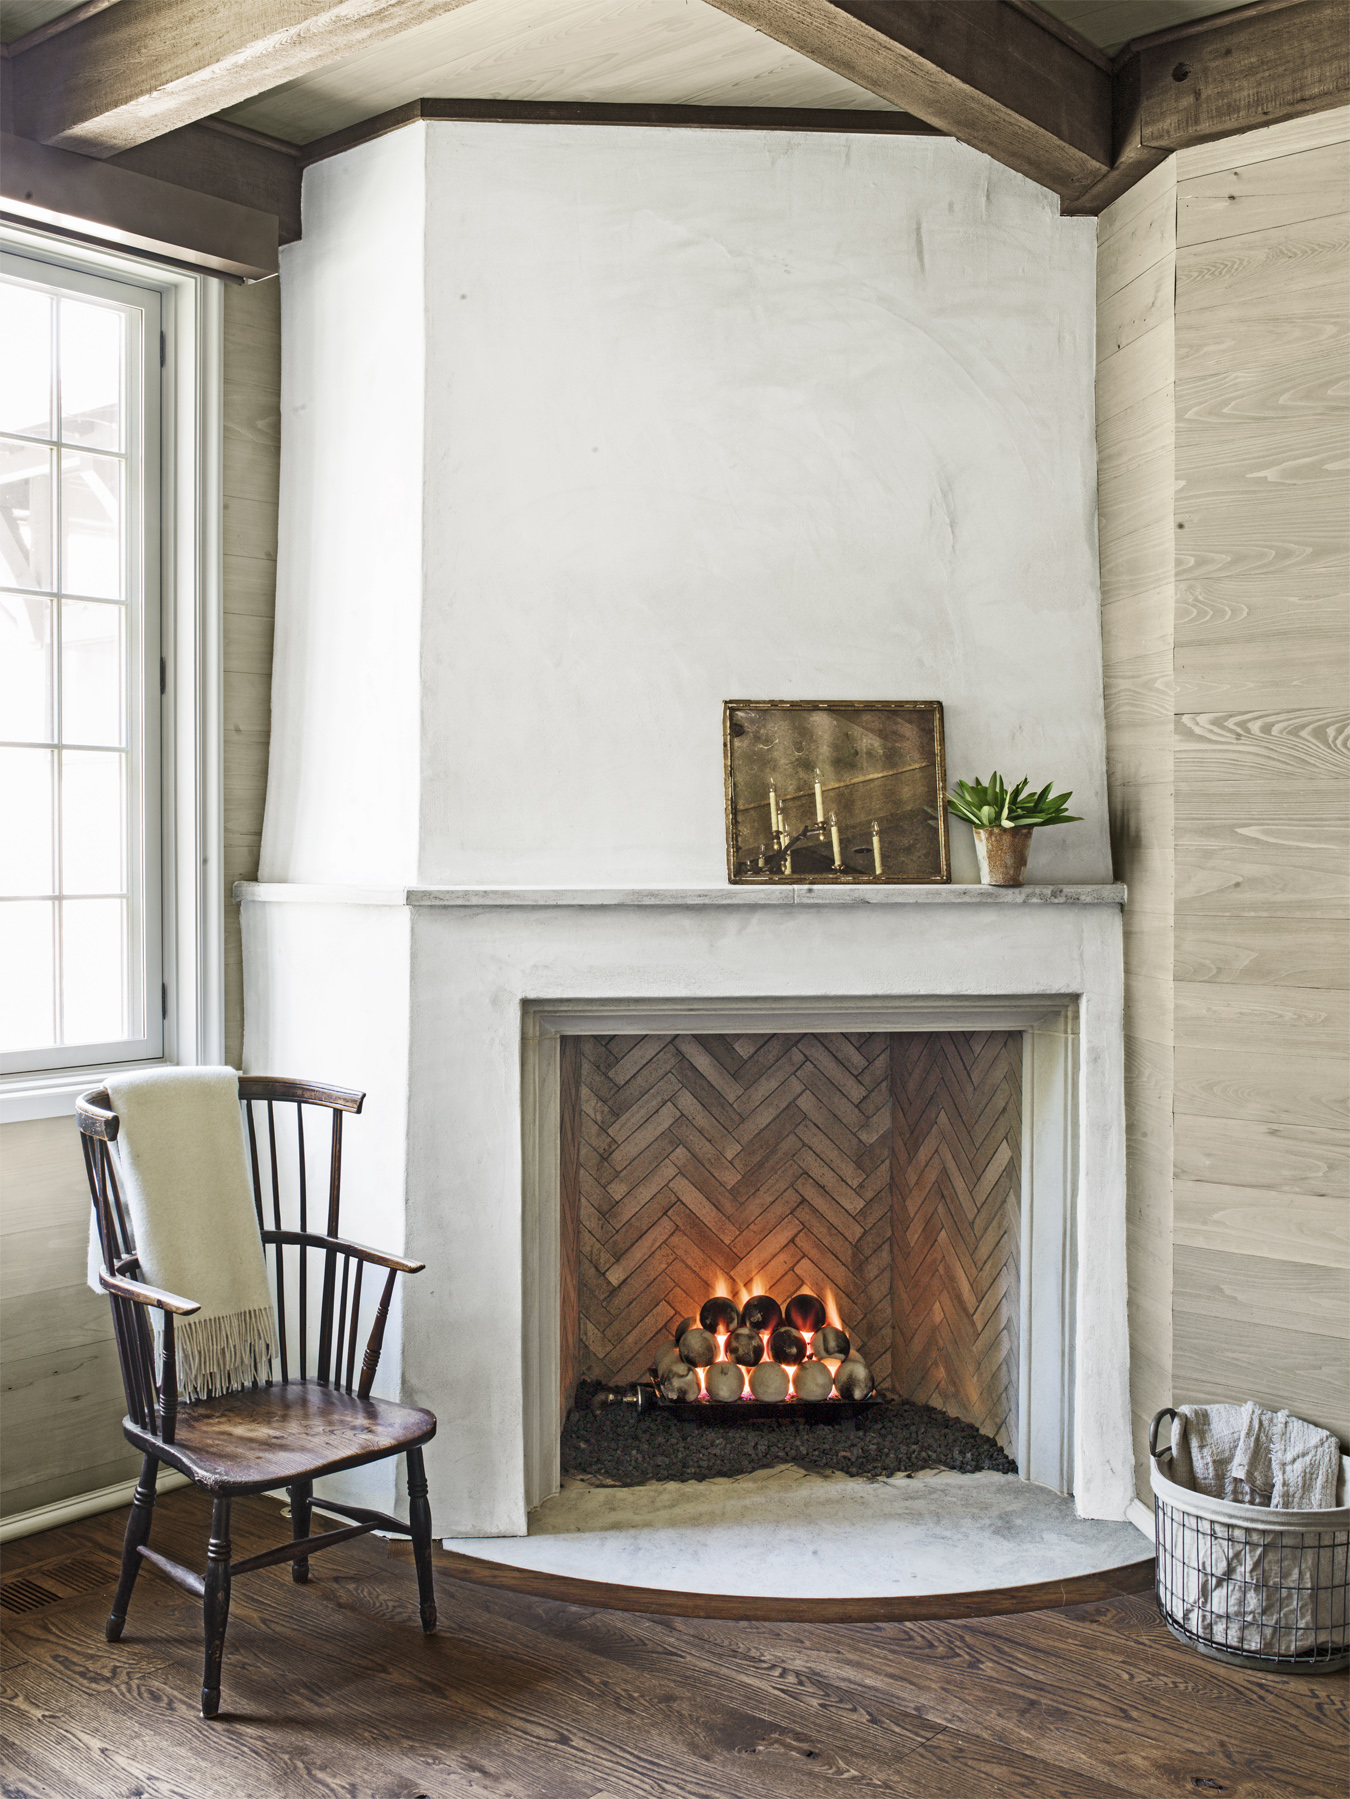 Living Room With Fireplace Design Fireplace Designs Fireplace Photos